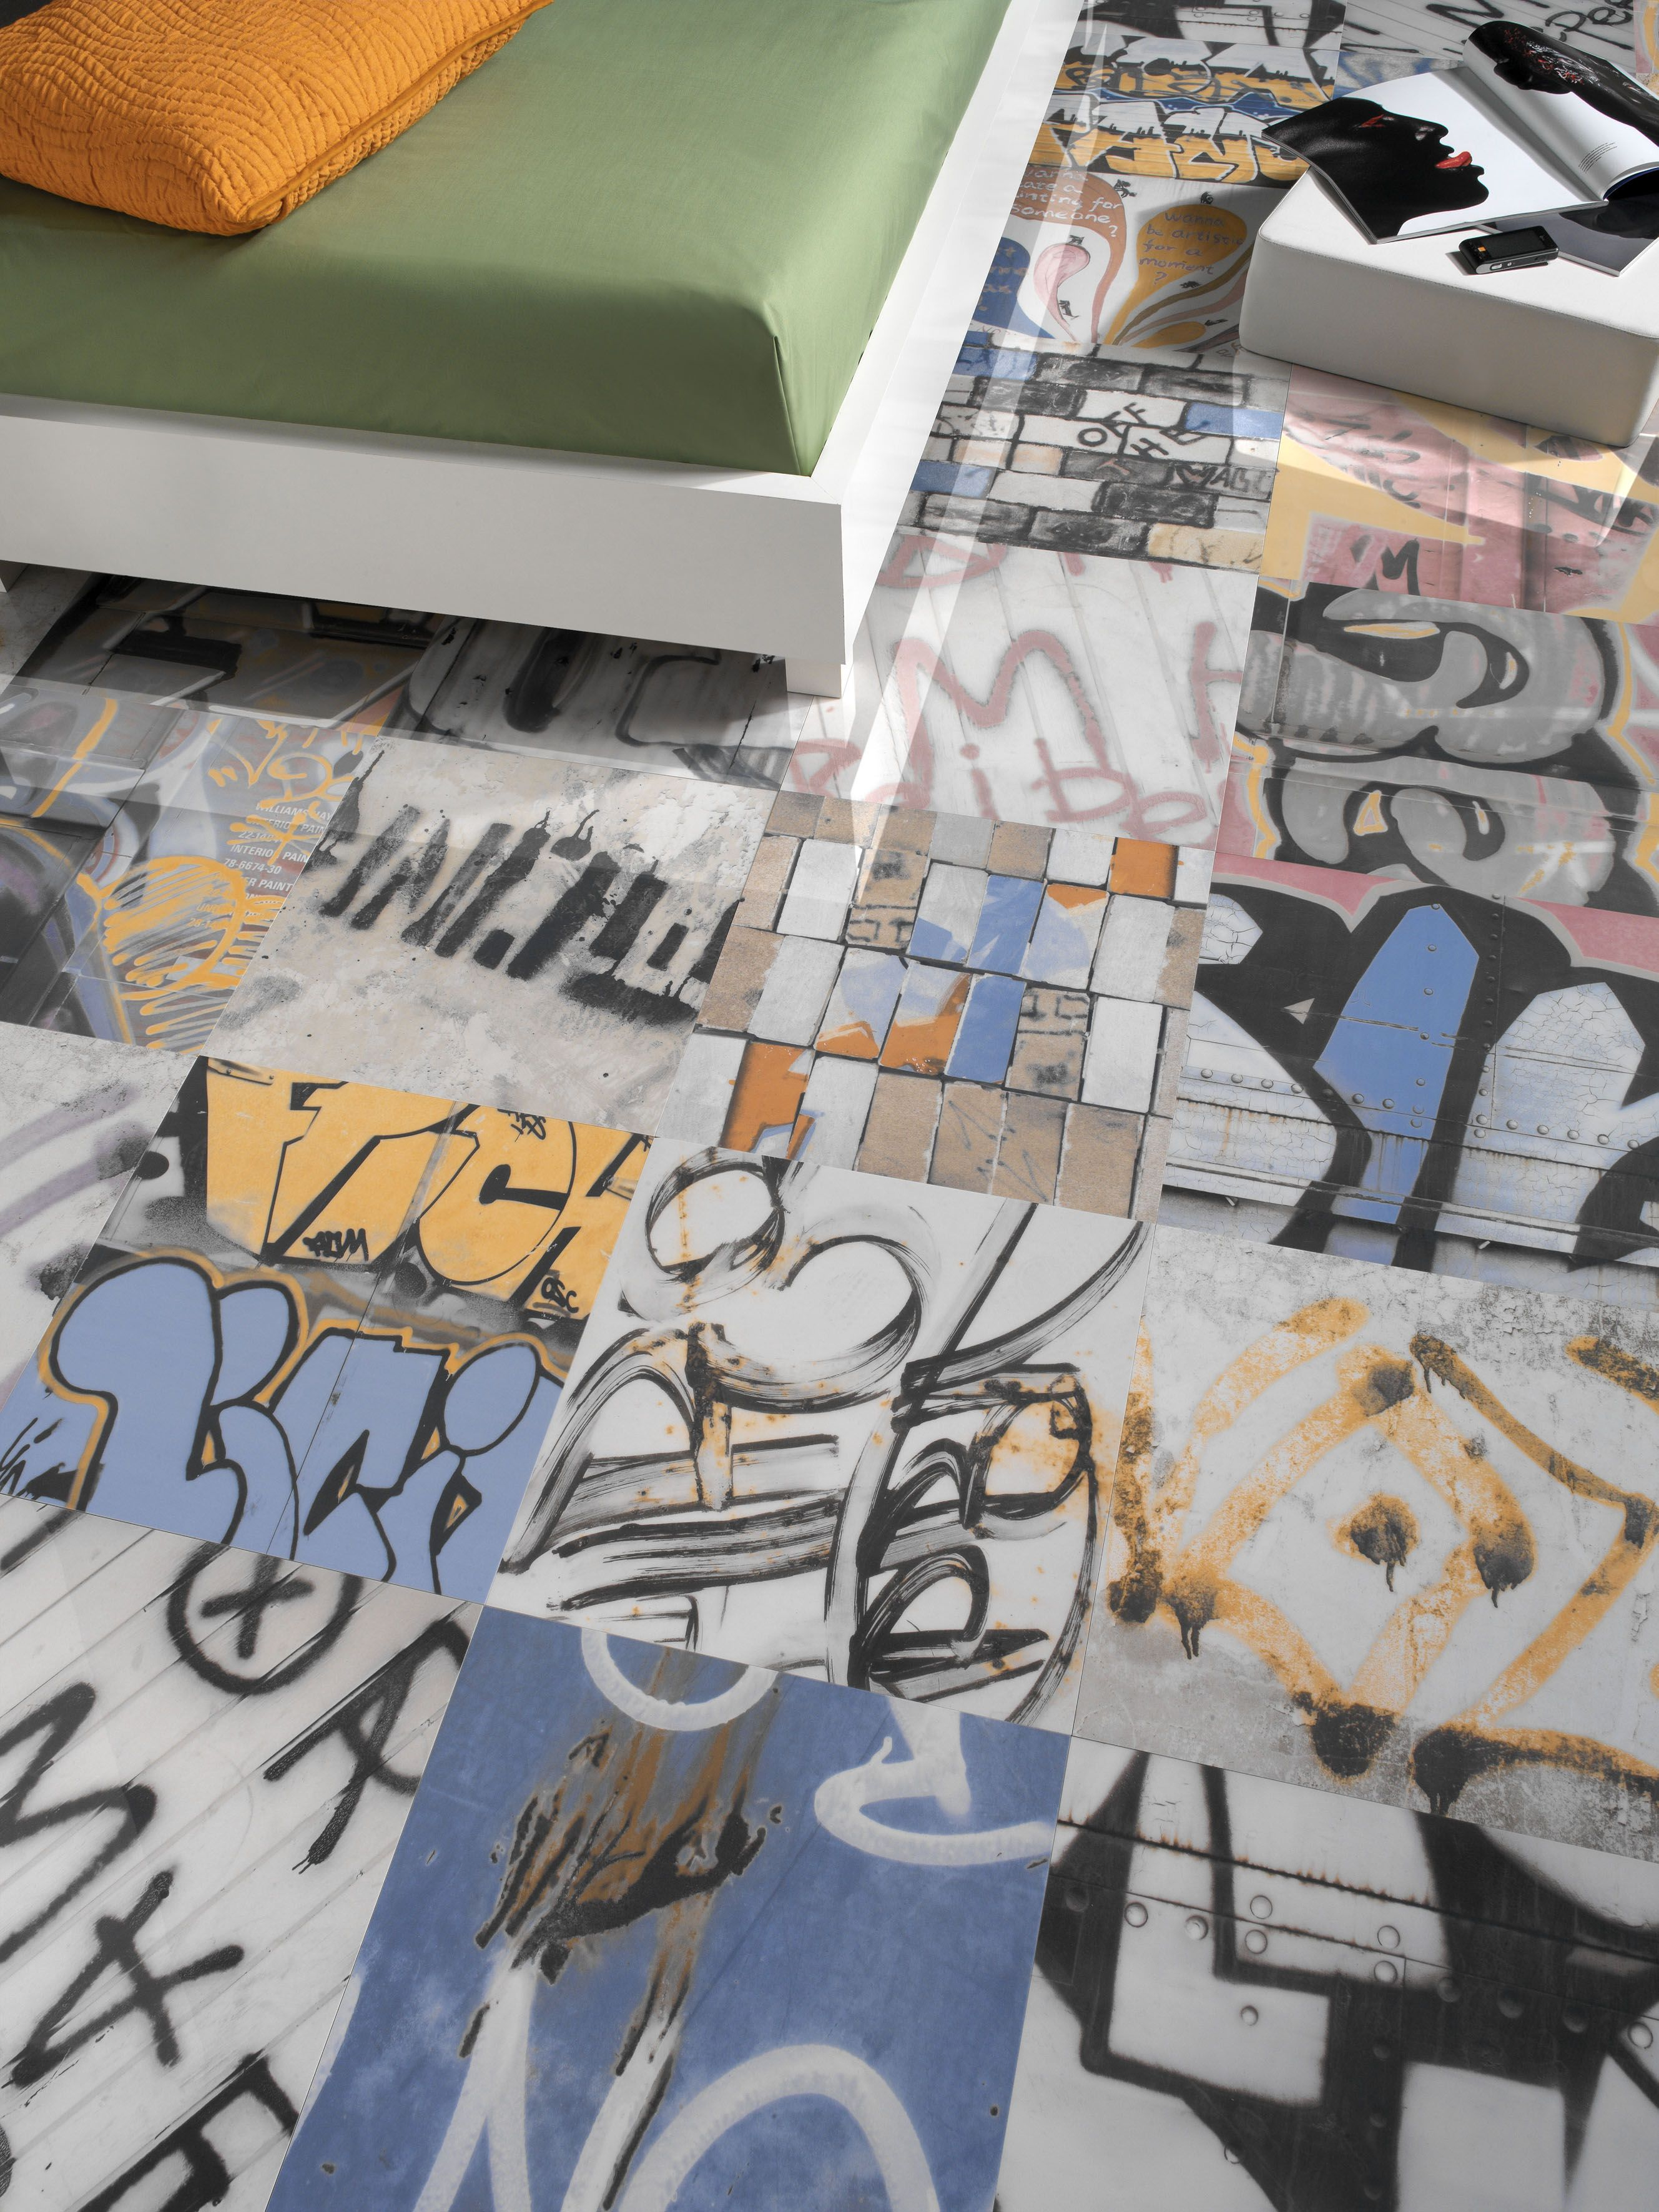 Banksy a renowned controversial grafitti artist from the uk has banksy wall and floor tiles from hydra tiles ltd call now on 01524 884 960 to purchase these stuning high gloss porcelain graffiti tiles dailygadgetfo Choice Image